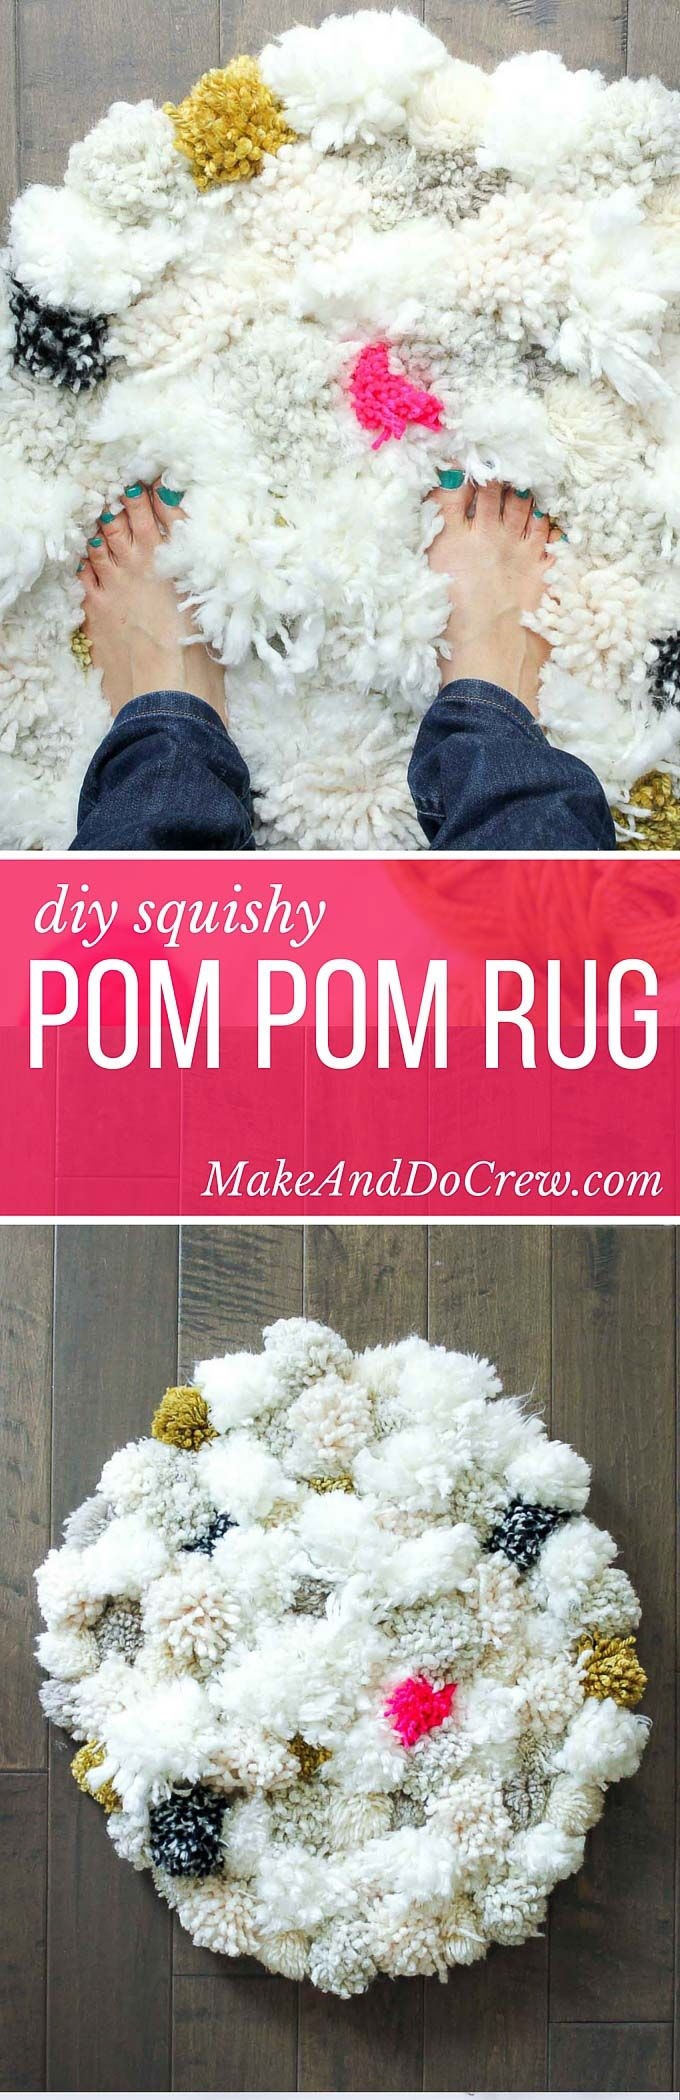 How To Make a DIY Pom Pom Rug. 16 Awesome DIY Rugs to Brighten up Your Home   Project ideas